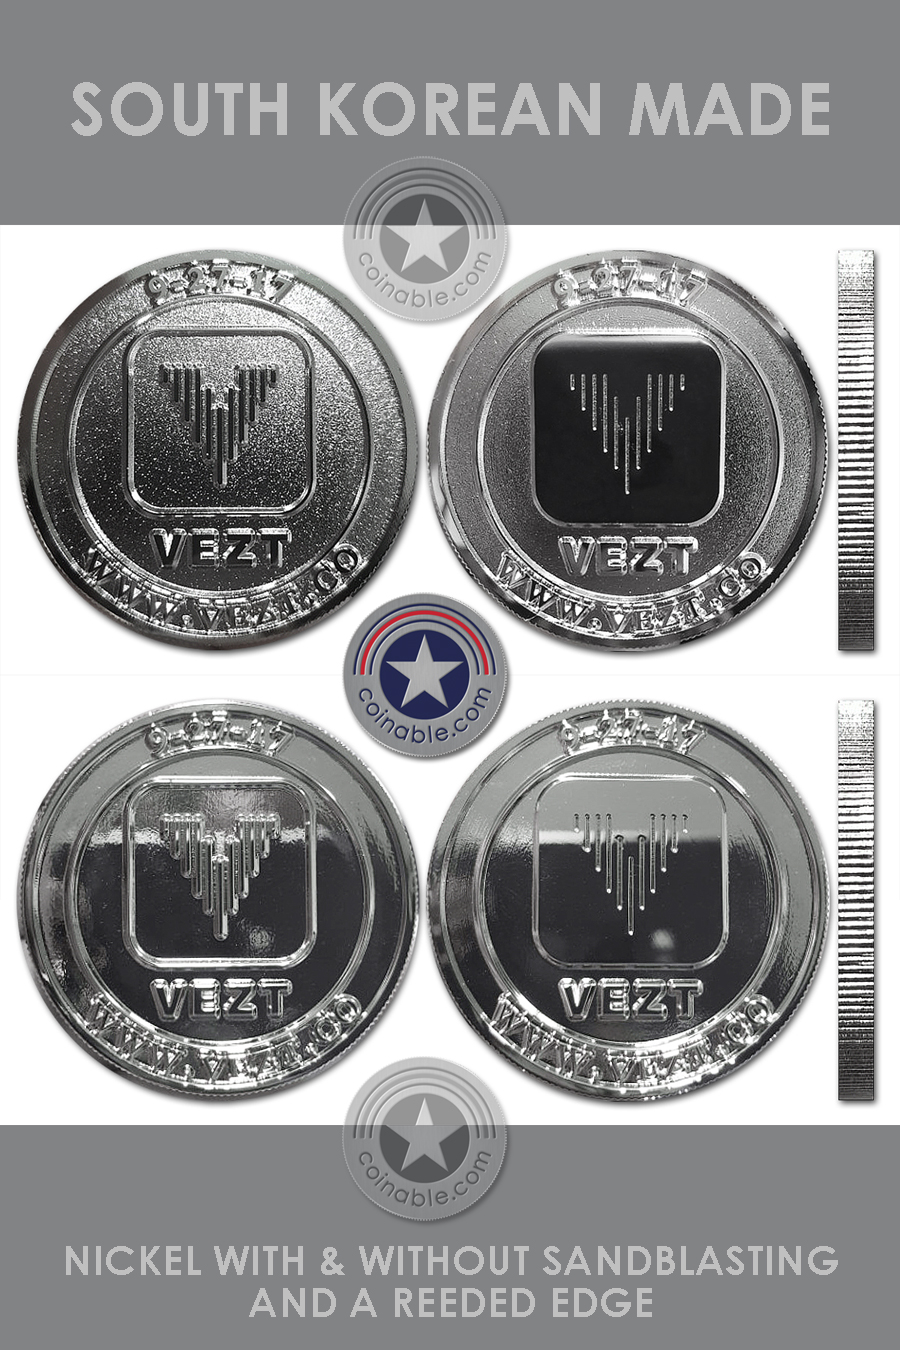 South-Korean-Made-Coin-NICKEL